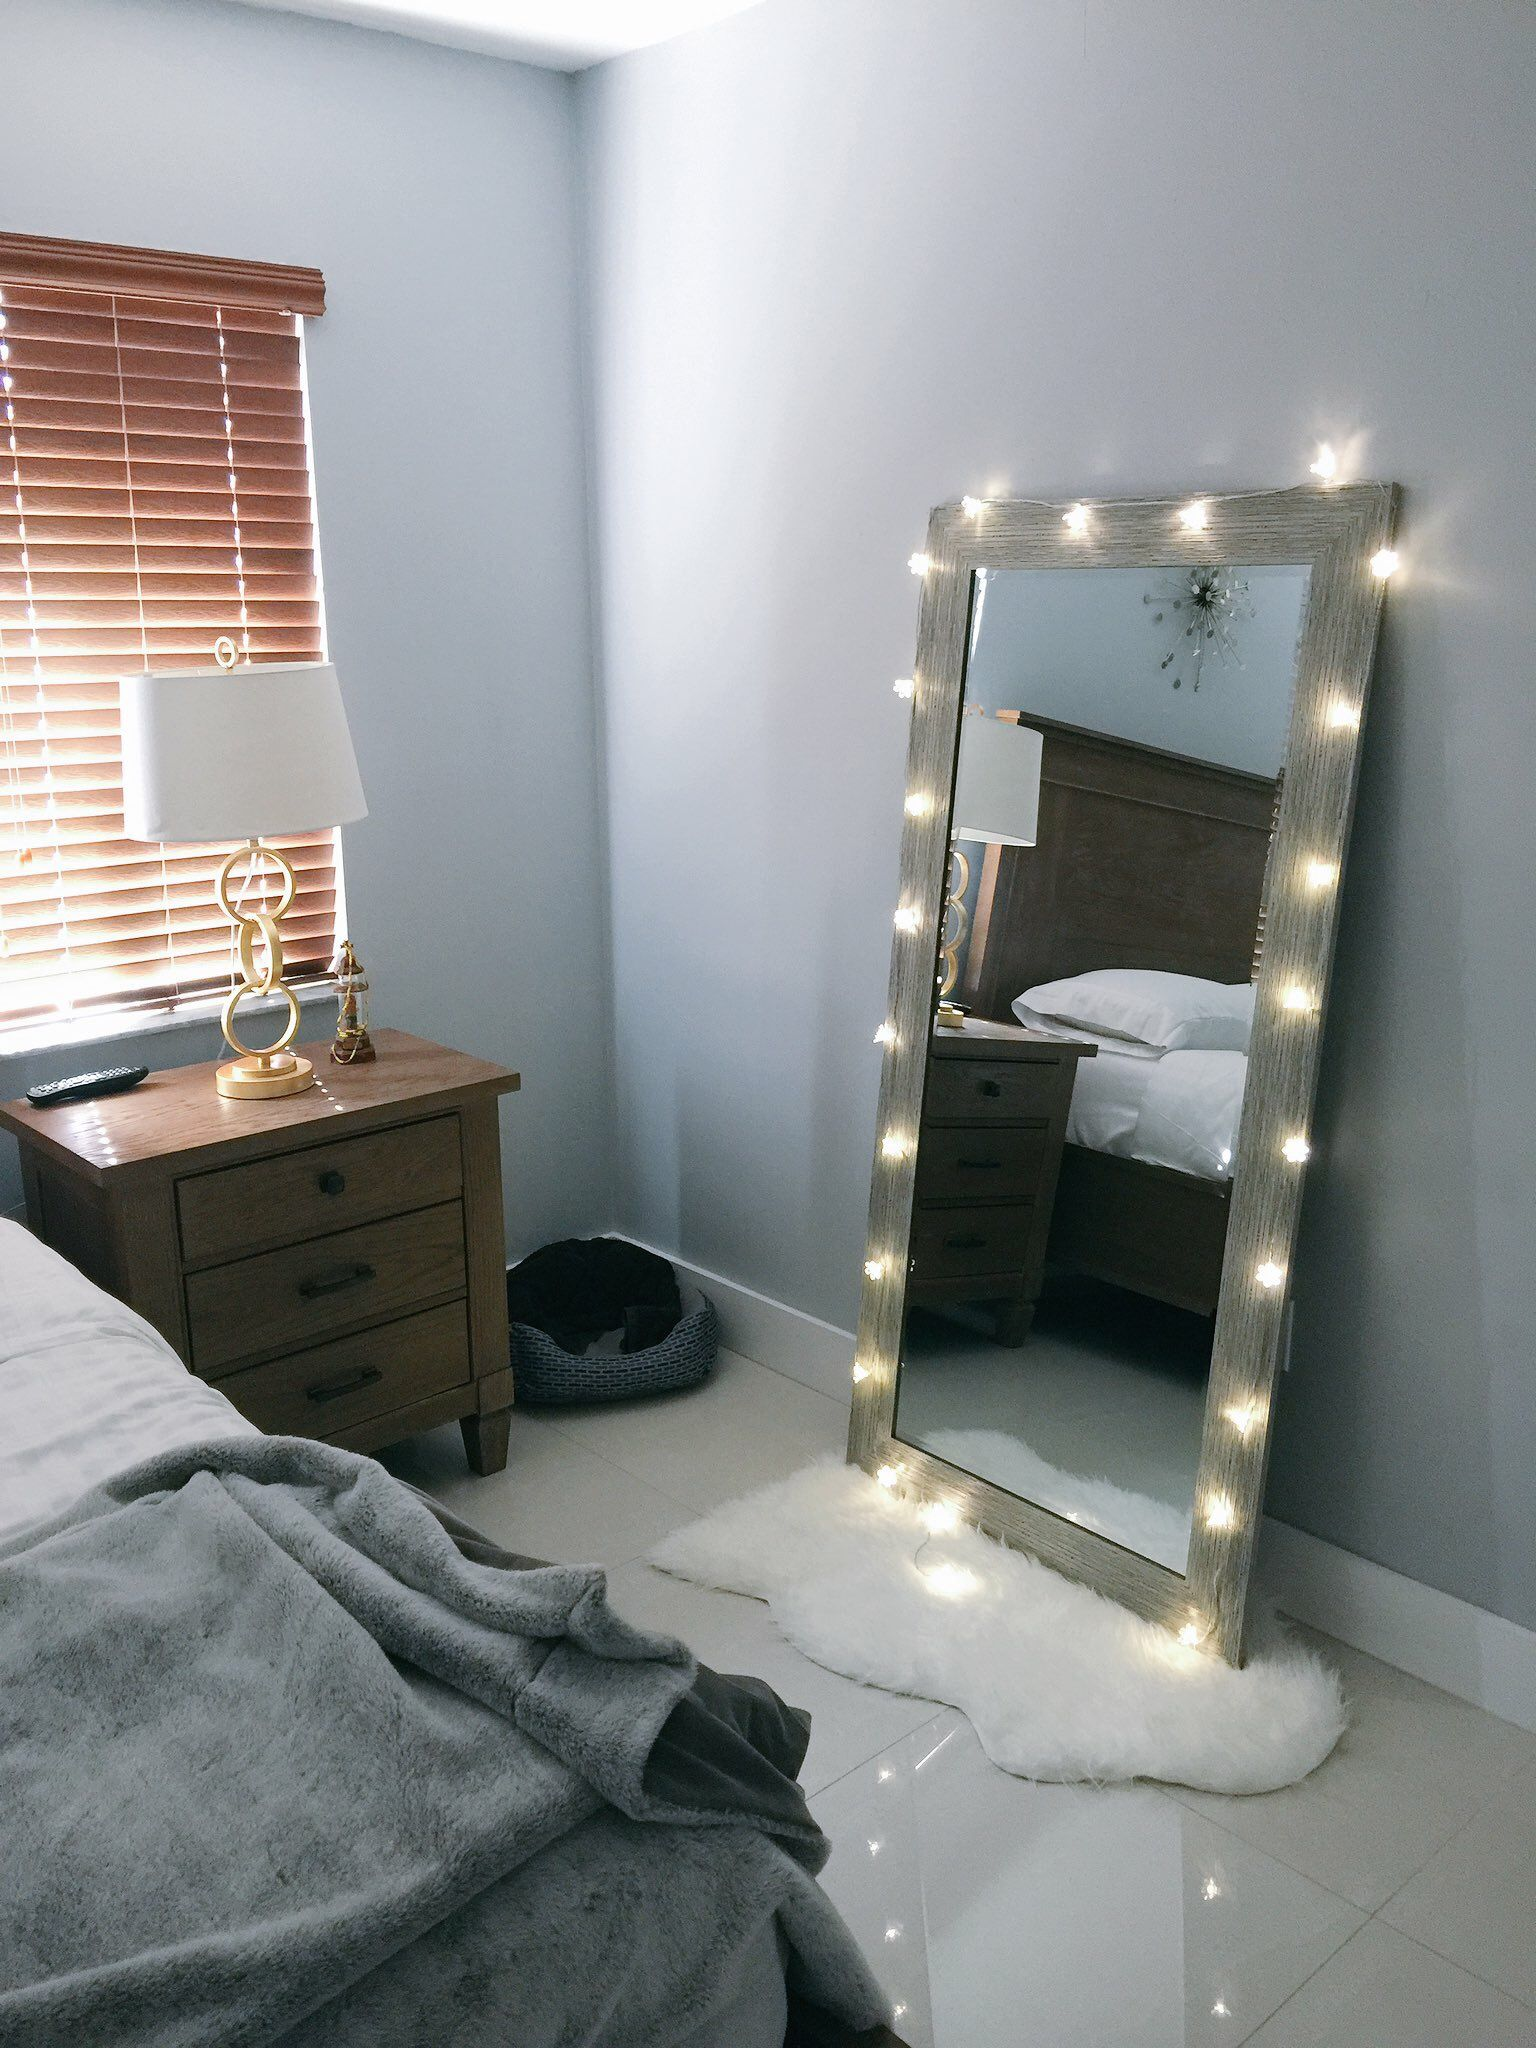 Bedroom decore ideas. #White #Mirror #Lights #master bedroom #Wall